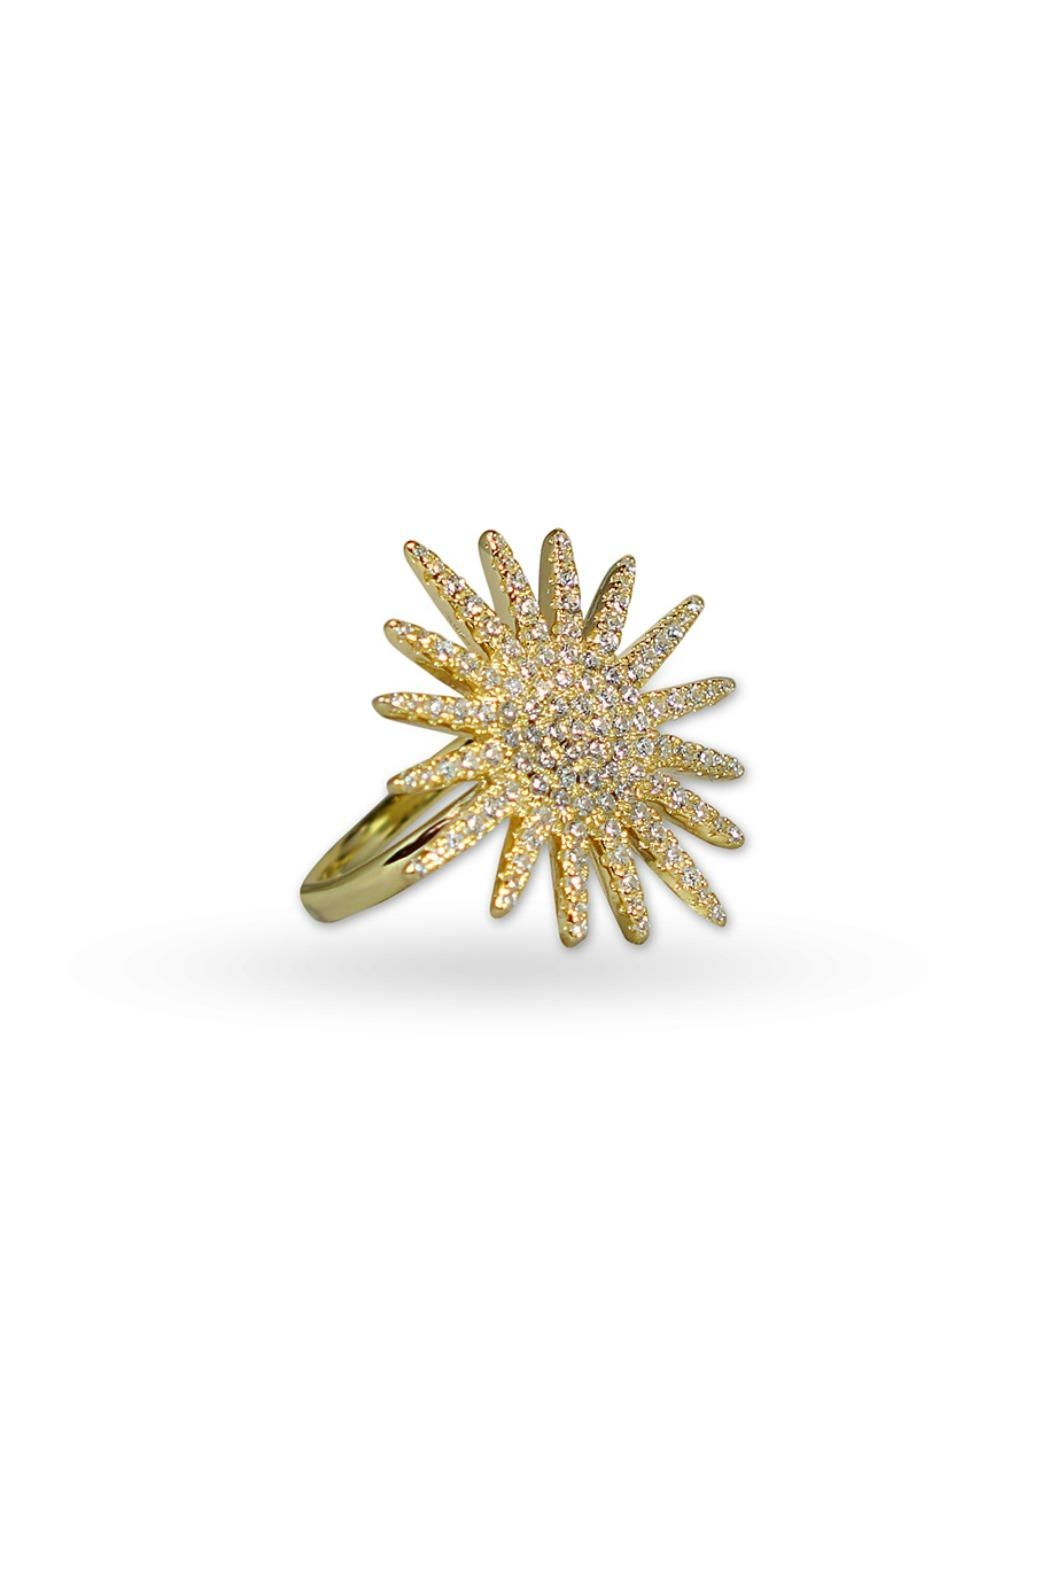 Jaimie Nicole Large-Gold Starburst Ring - Main Image